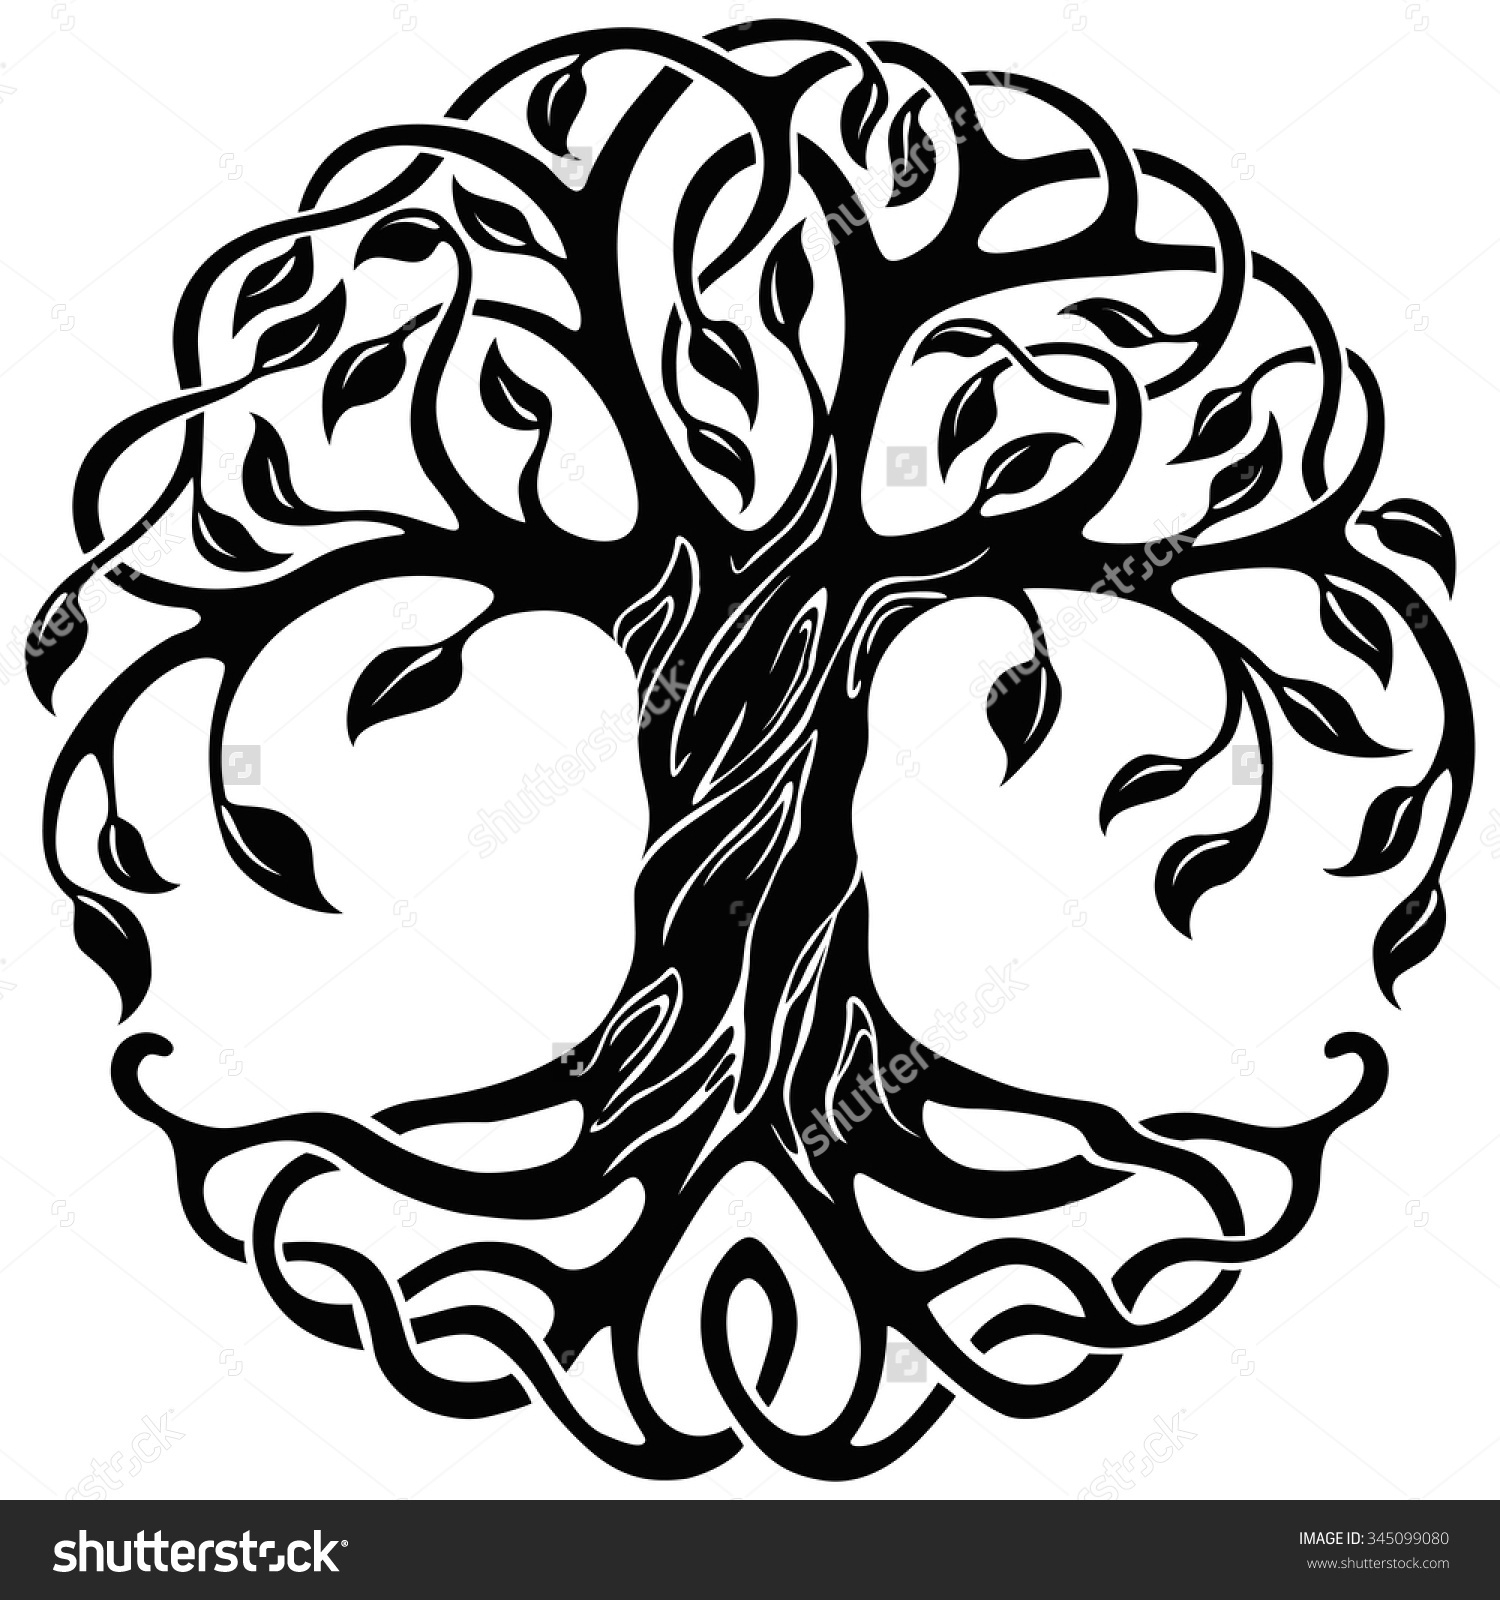 1500x1600 Symbol Of Tree Of Life Images